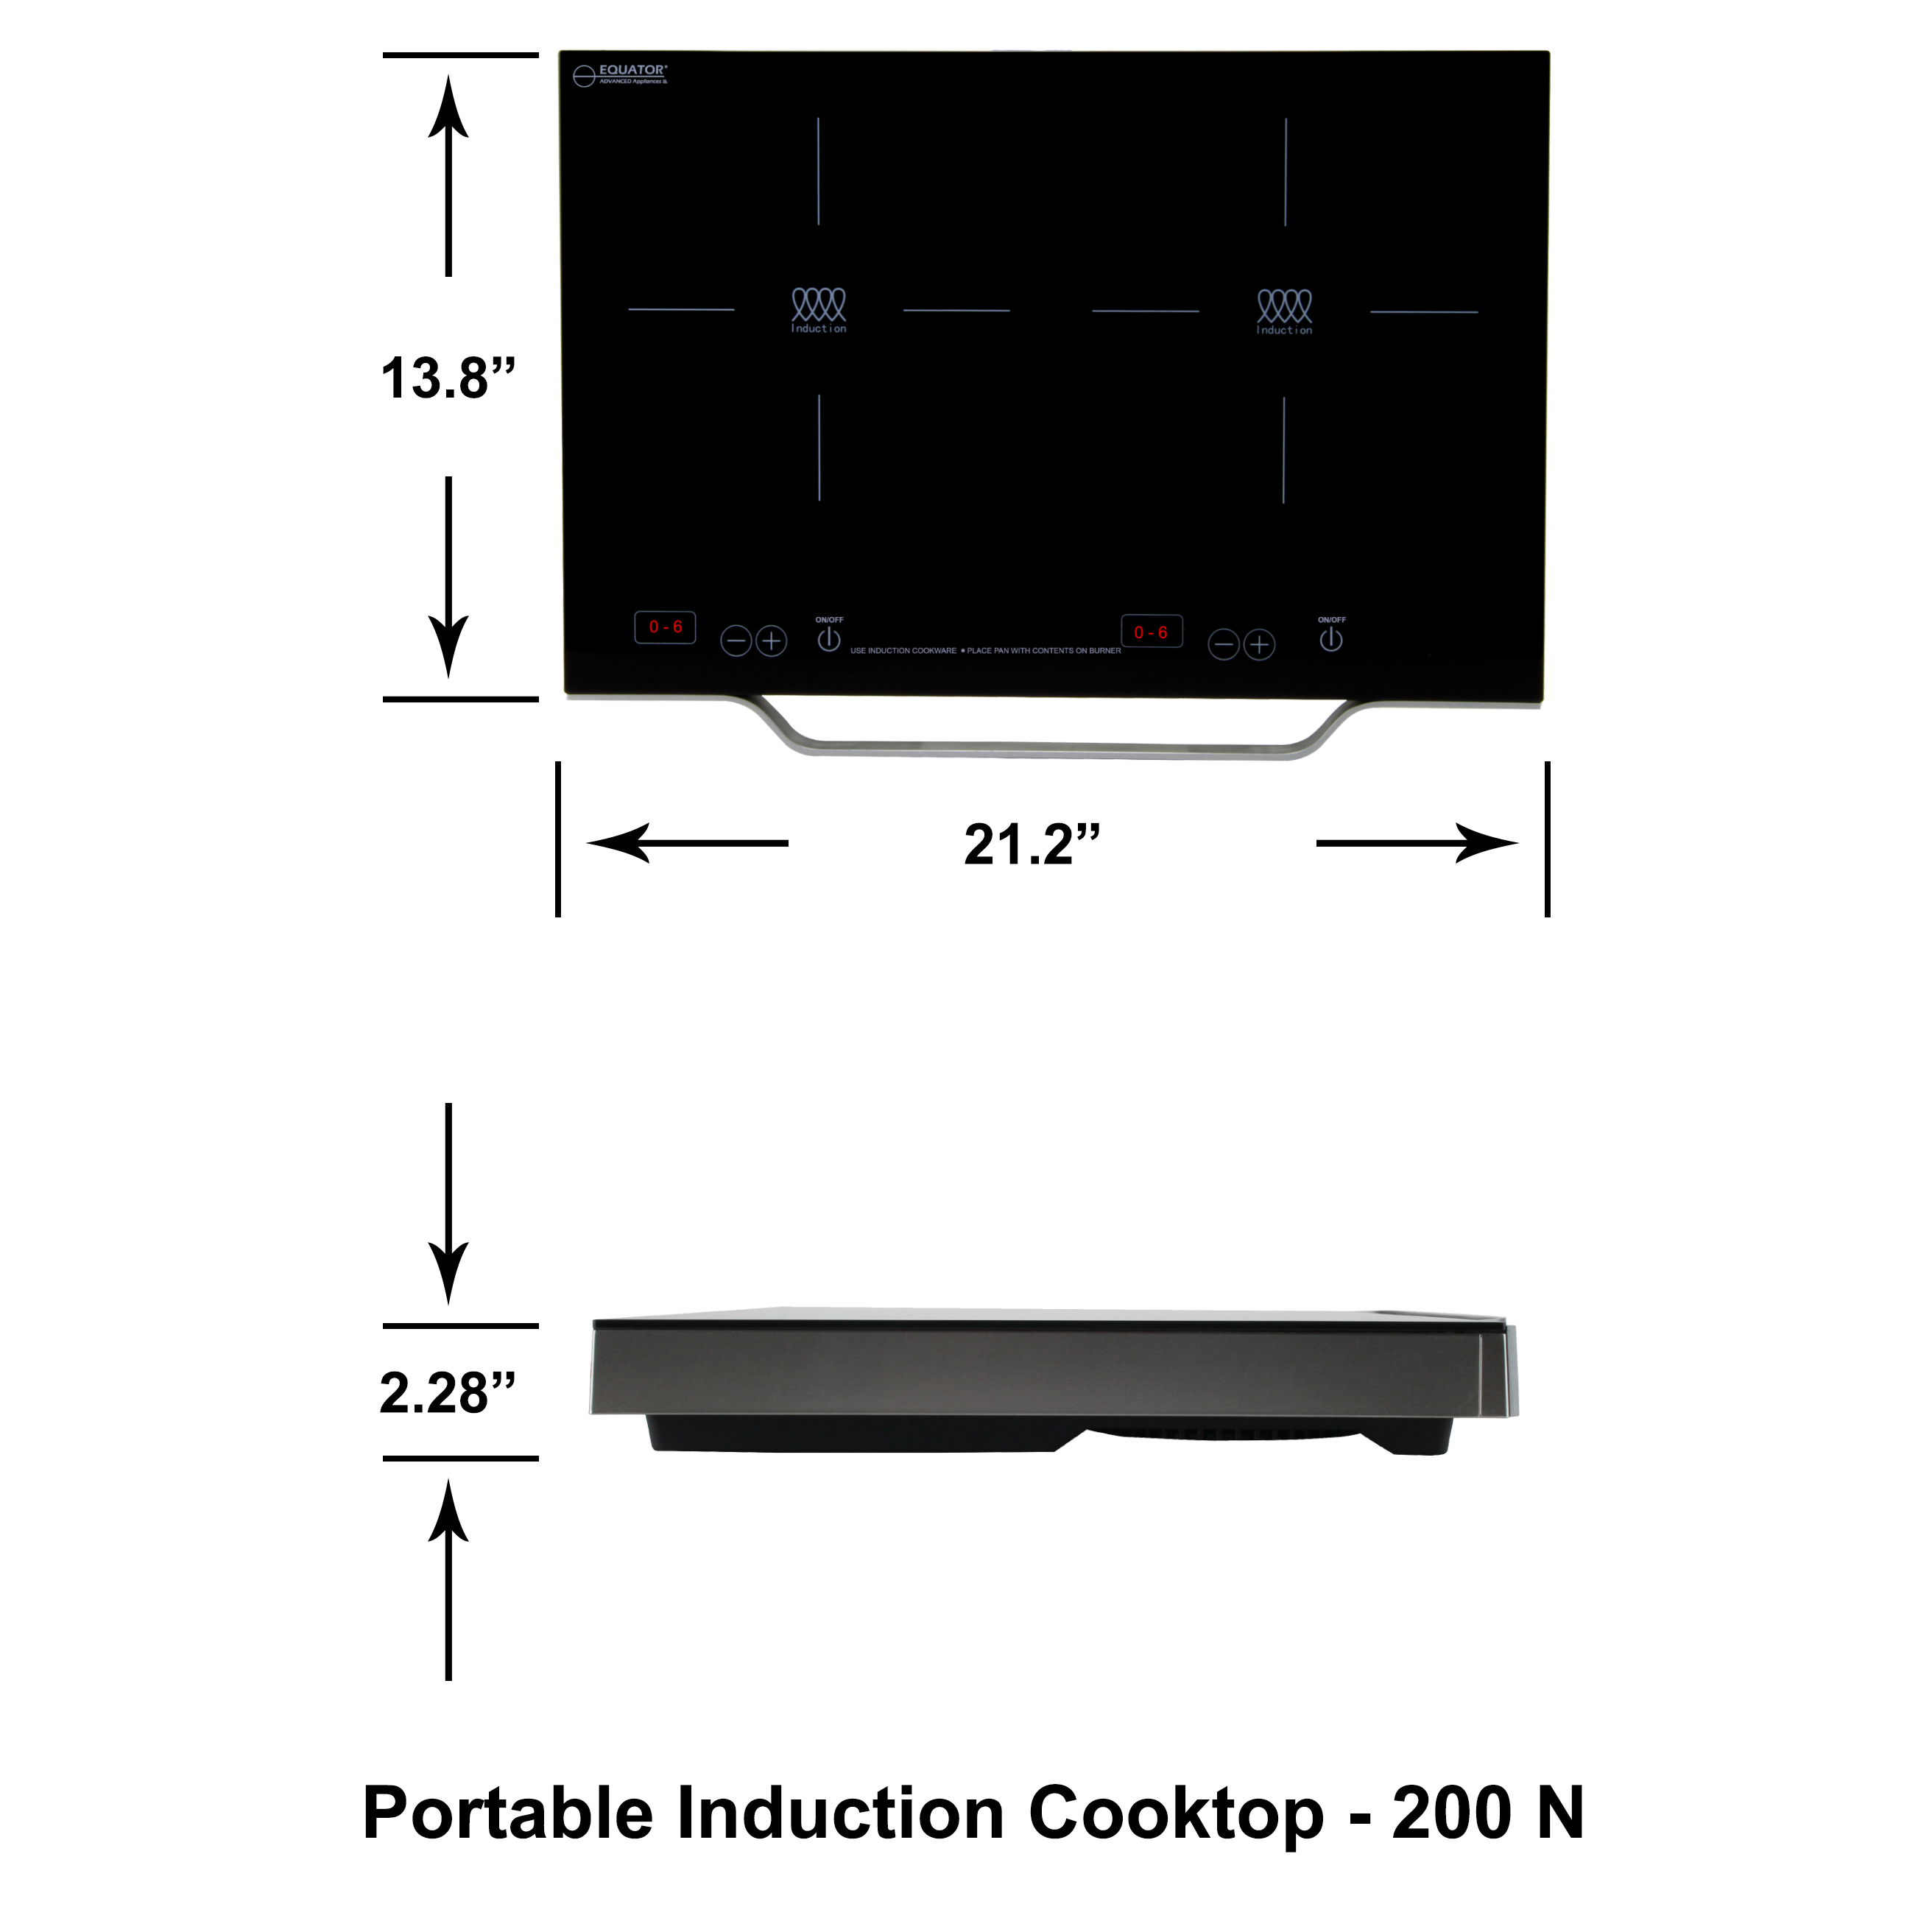 Portable Induction Cooktop PIC  200N